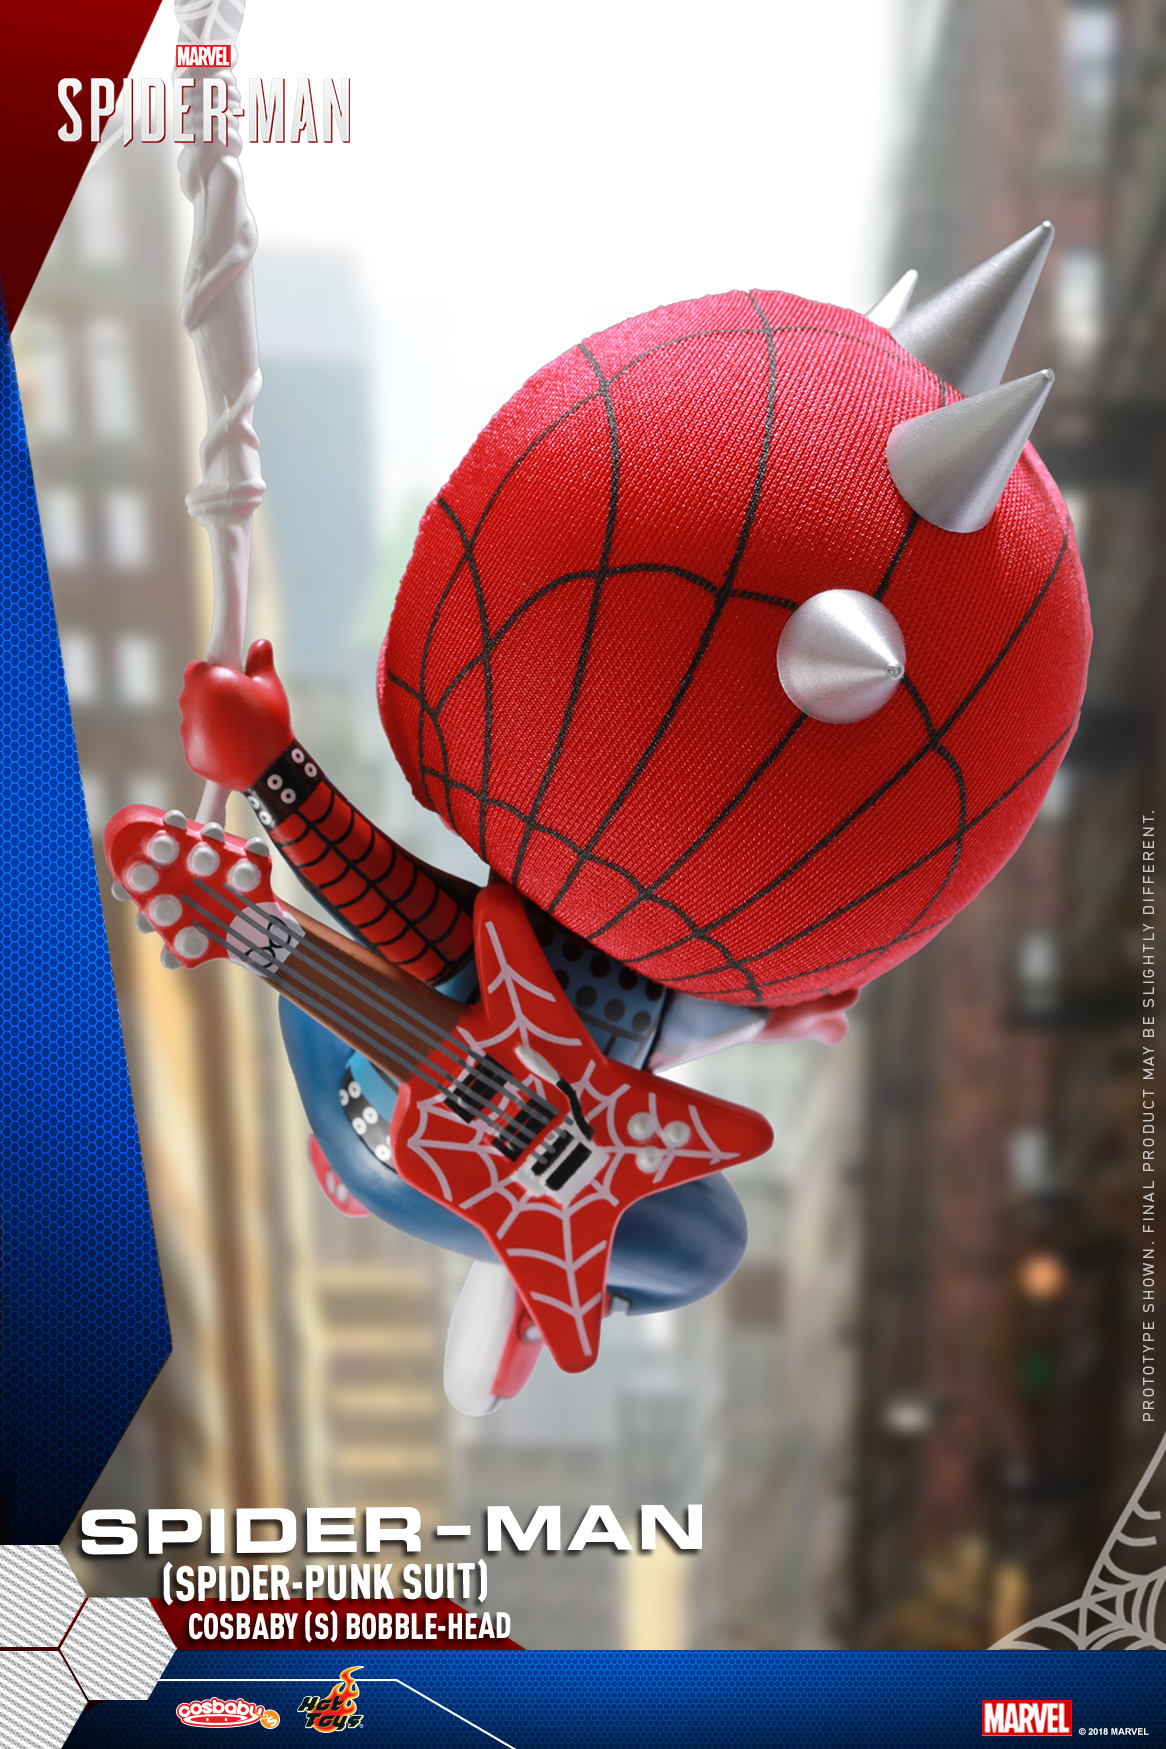 Hot Toys - Marvel Spider-Man - Spider-Man (Spider-Punk Suit) Cosbaby_PR4